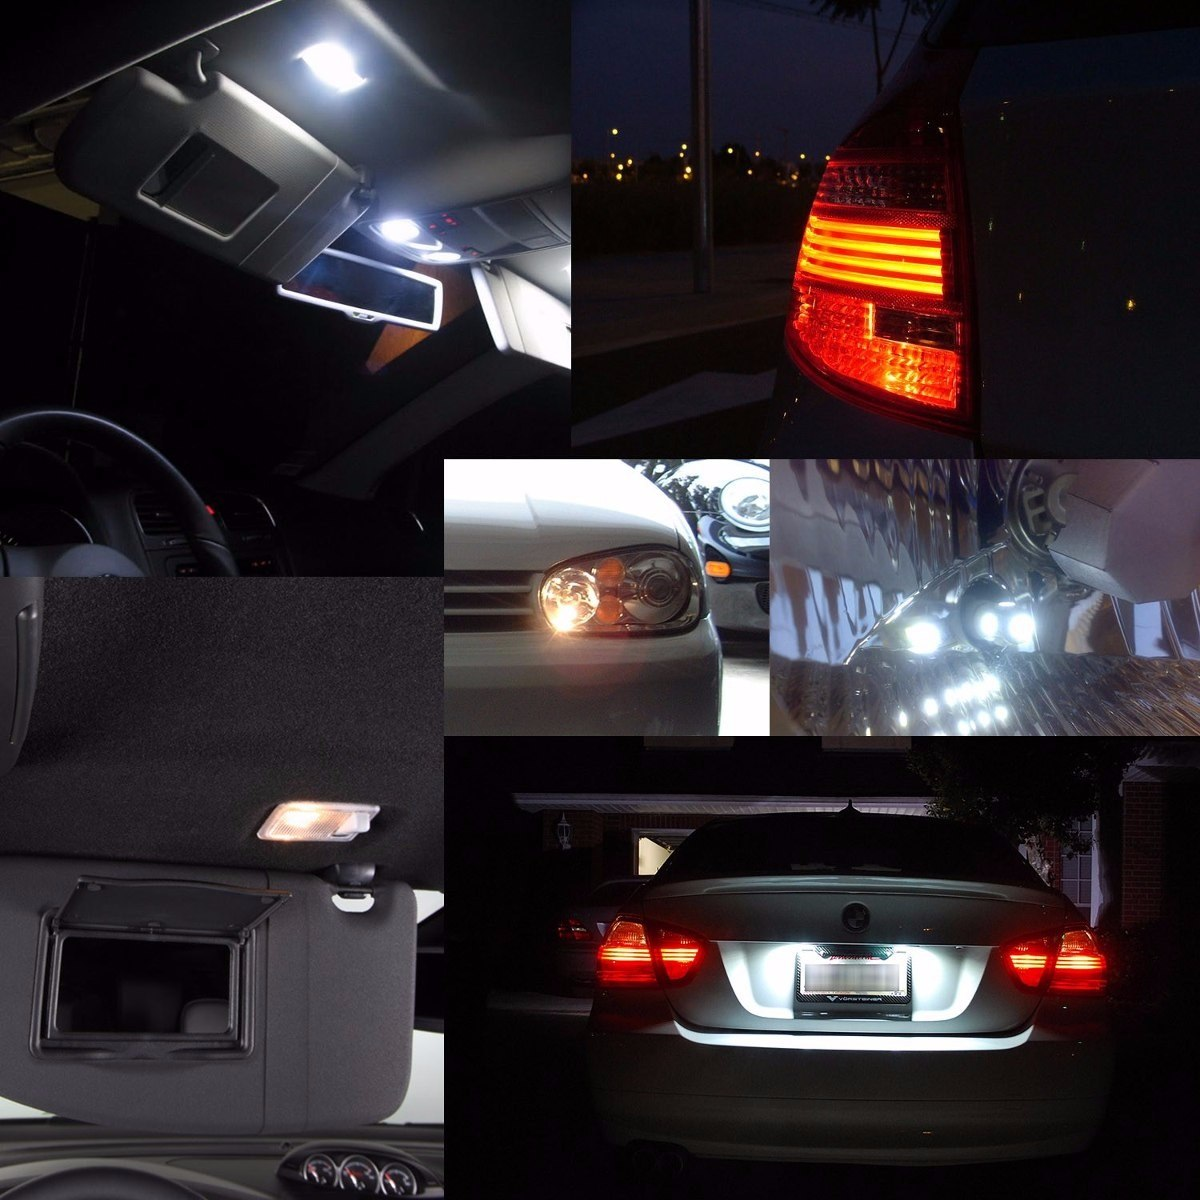 Kit de luces bora vw led interior cuartos portaplacas mk5 - Luces para habitaciones ...